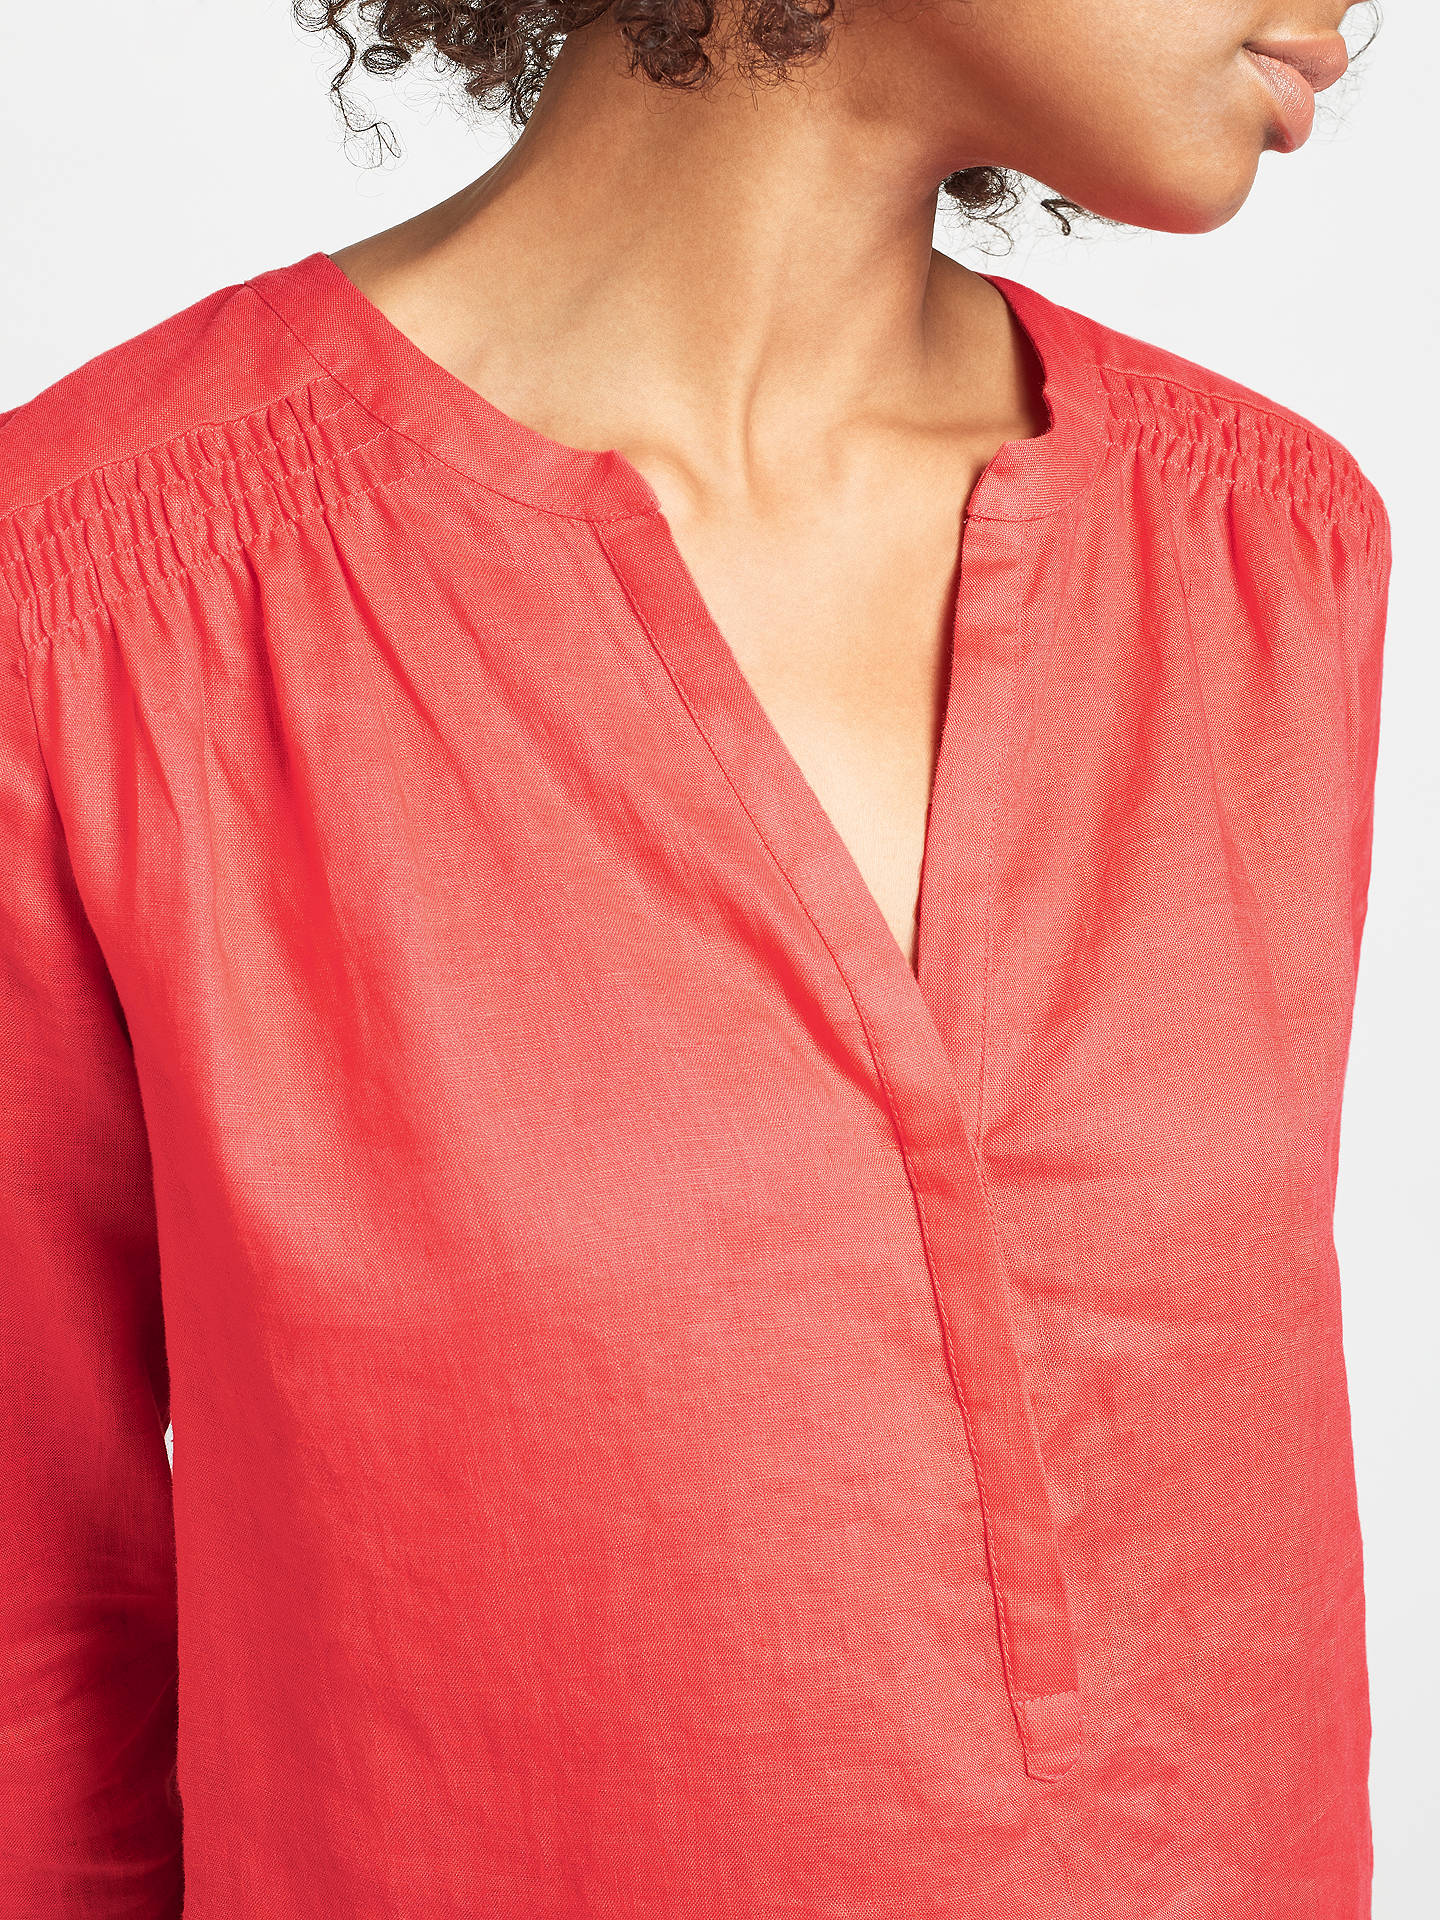 BuyJohn Lewis Shearing Detail Linen Top, Coral, 8 Online at johnlewis.com